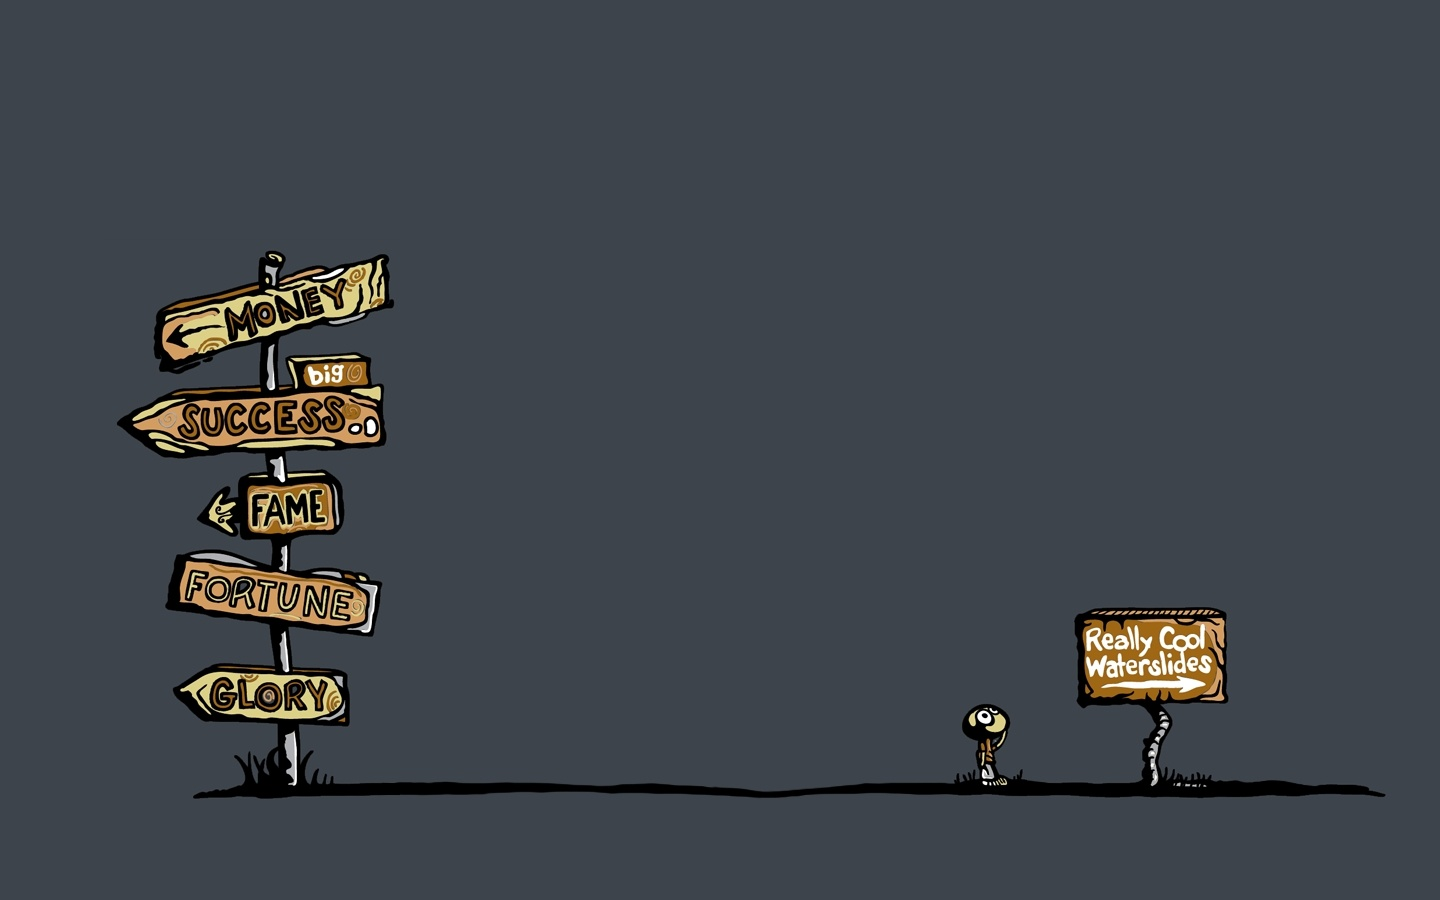 Wallpaper for Computer Funny HD wallpaper background 1440x900